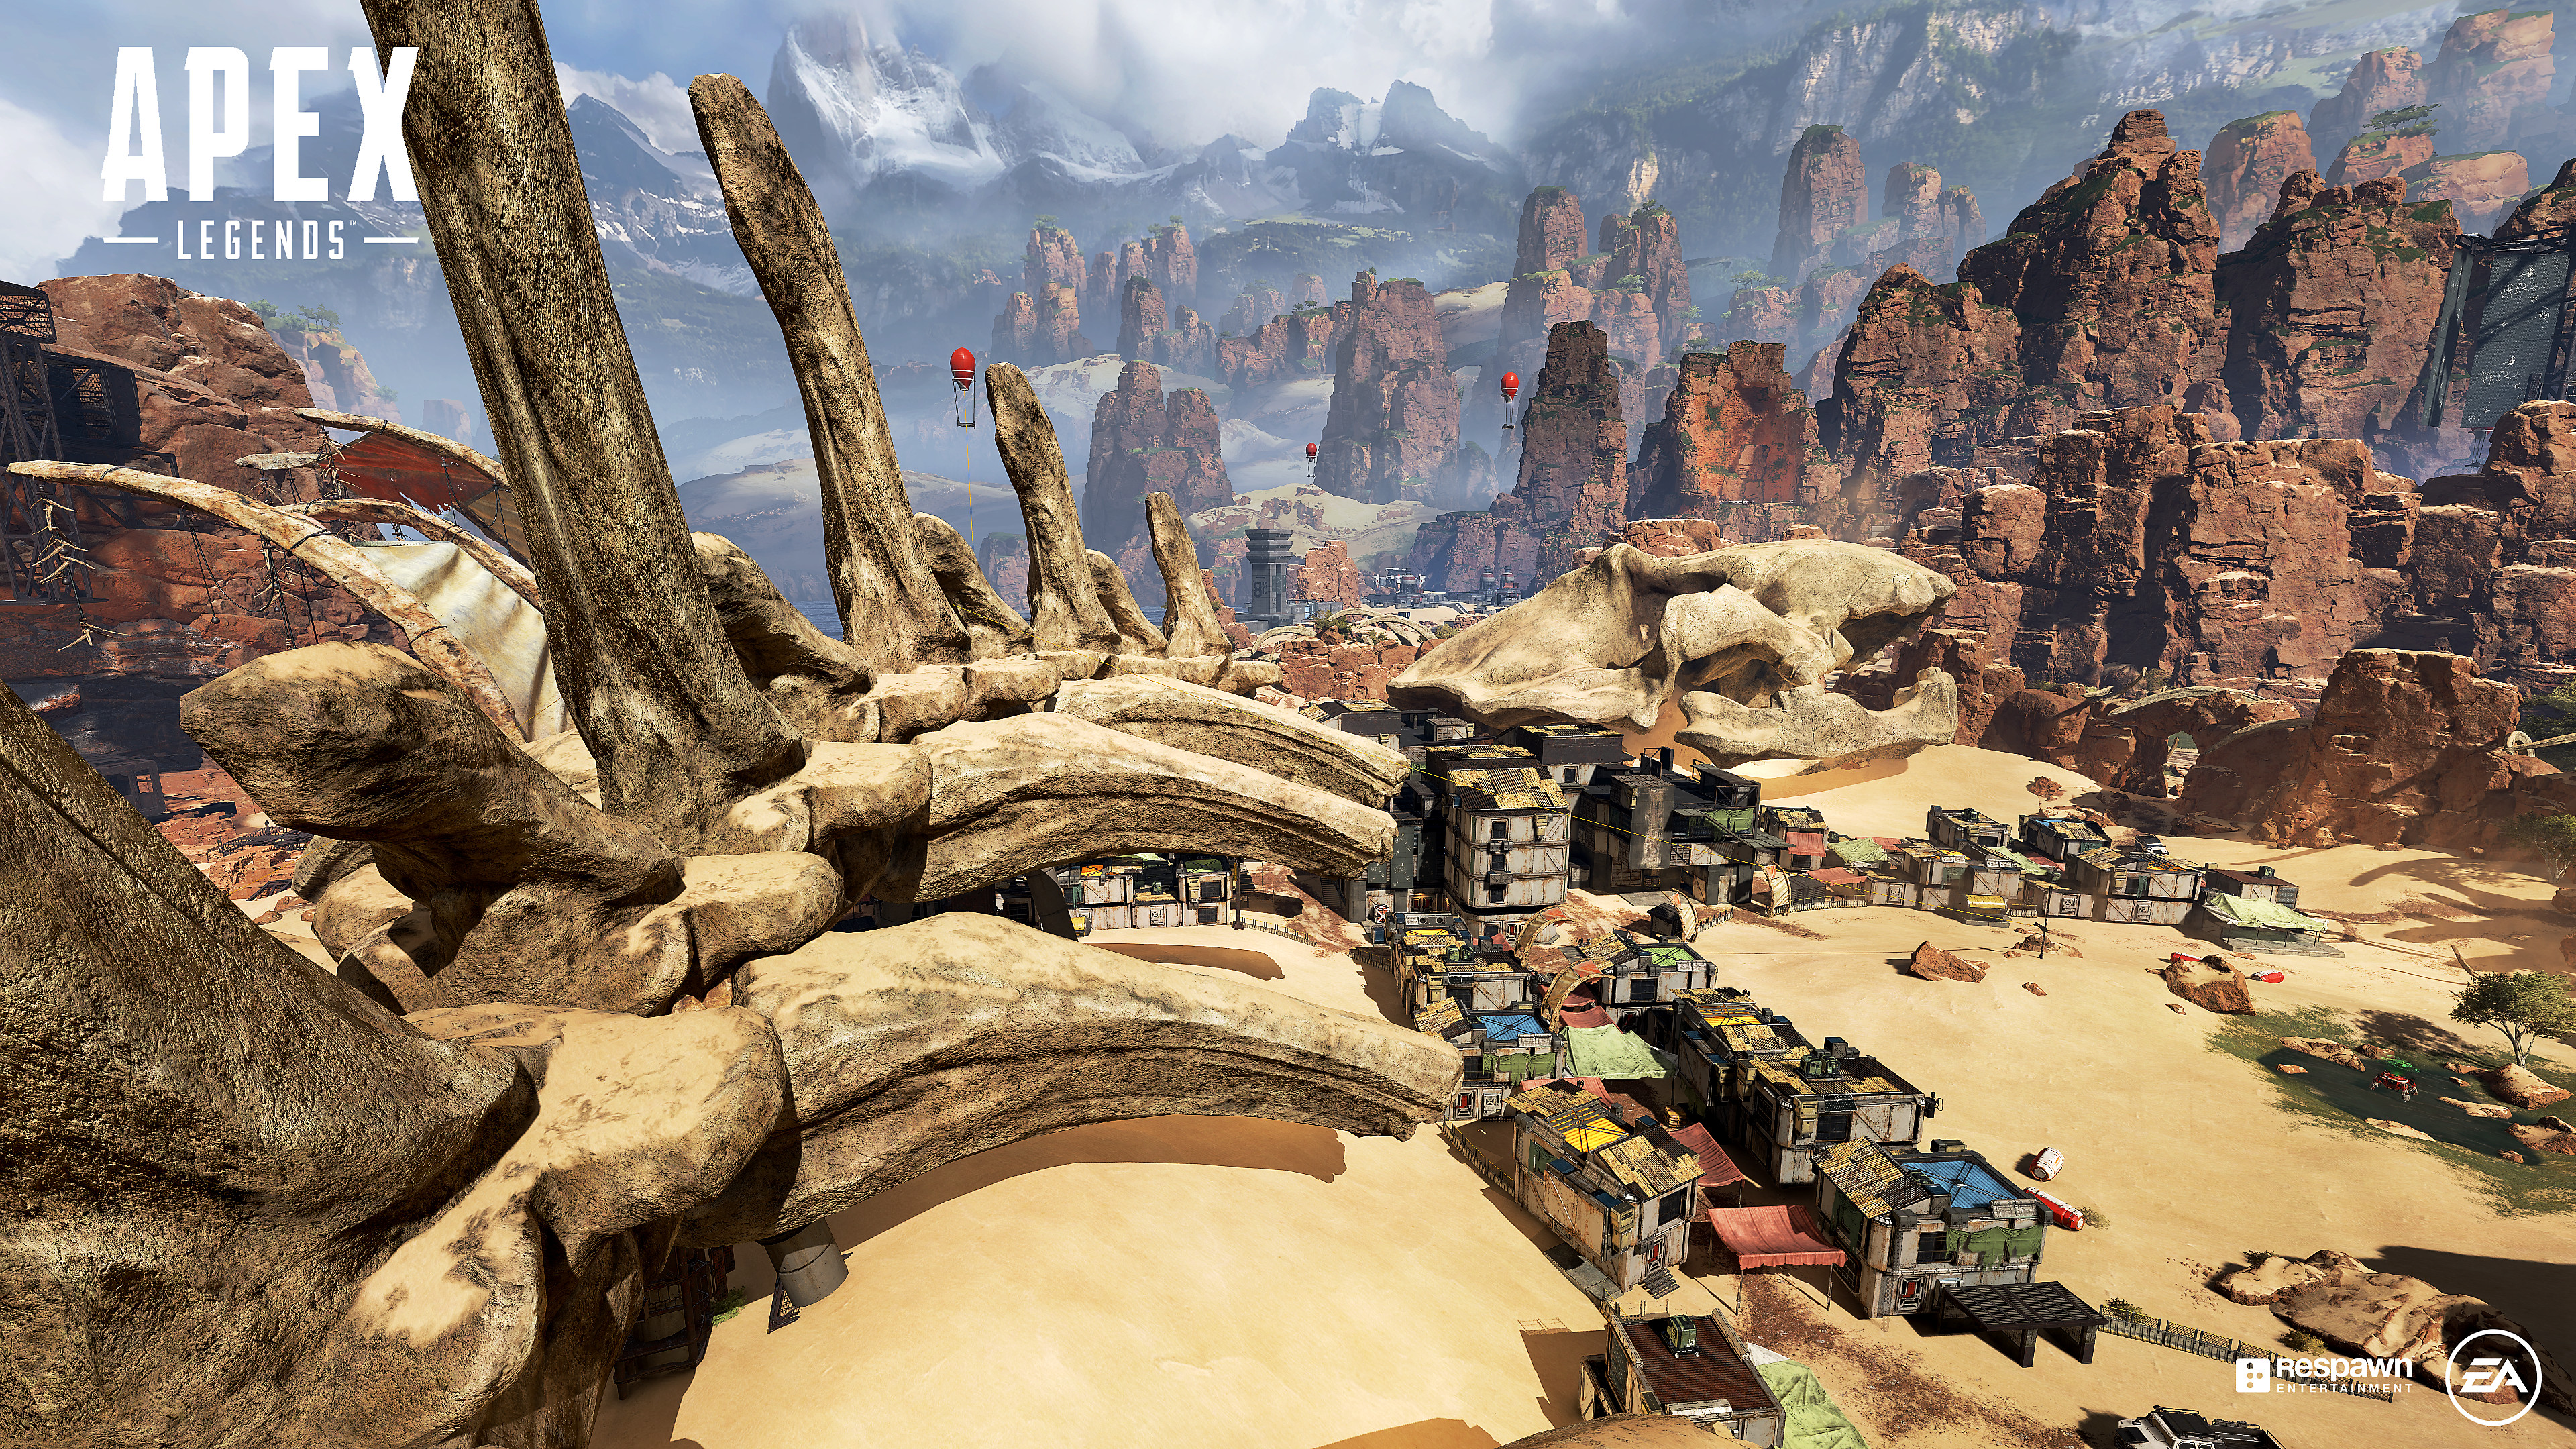 Apex Legends - Screenshot 2